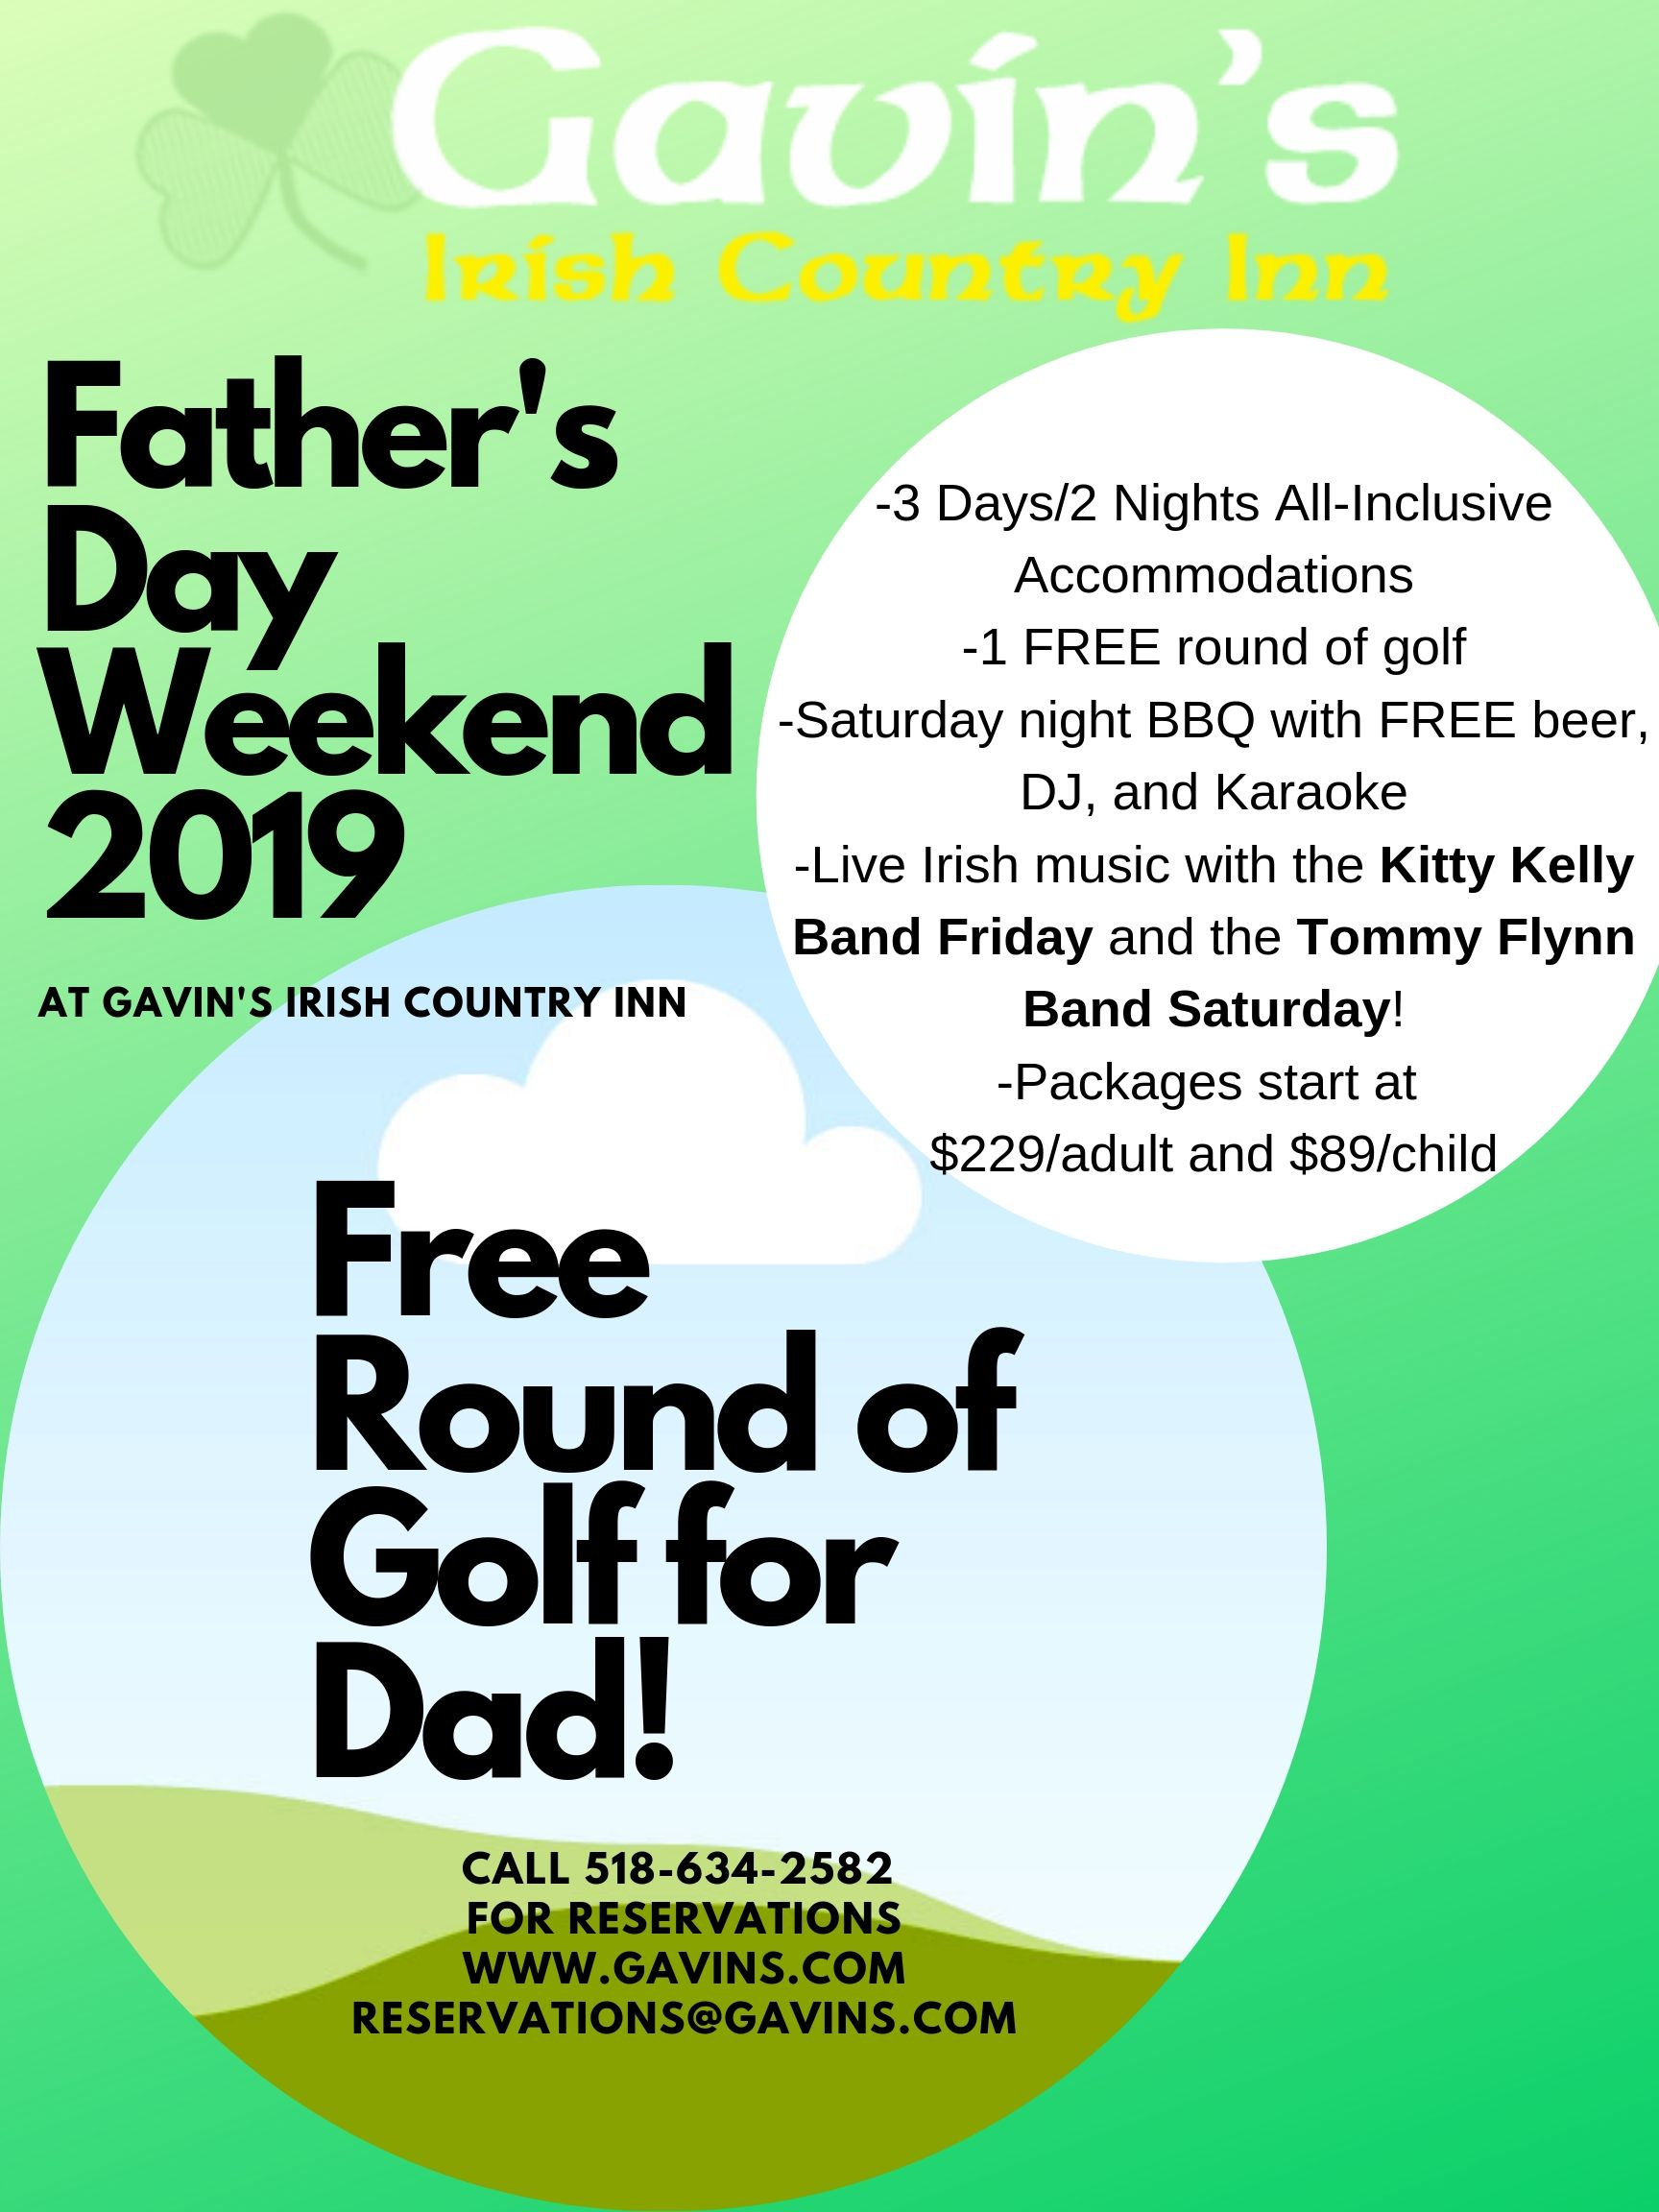 Father's Day Weekend 2019